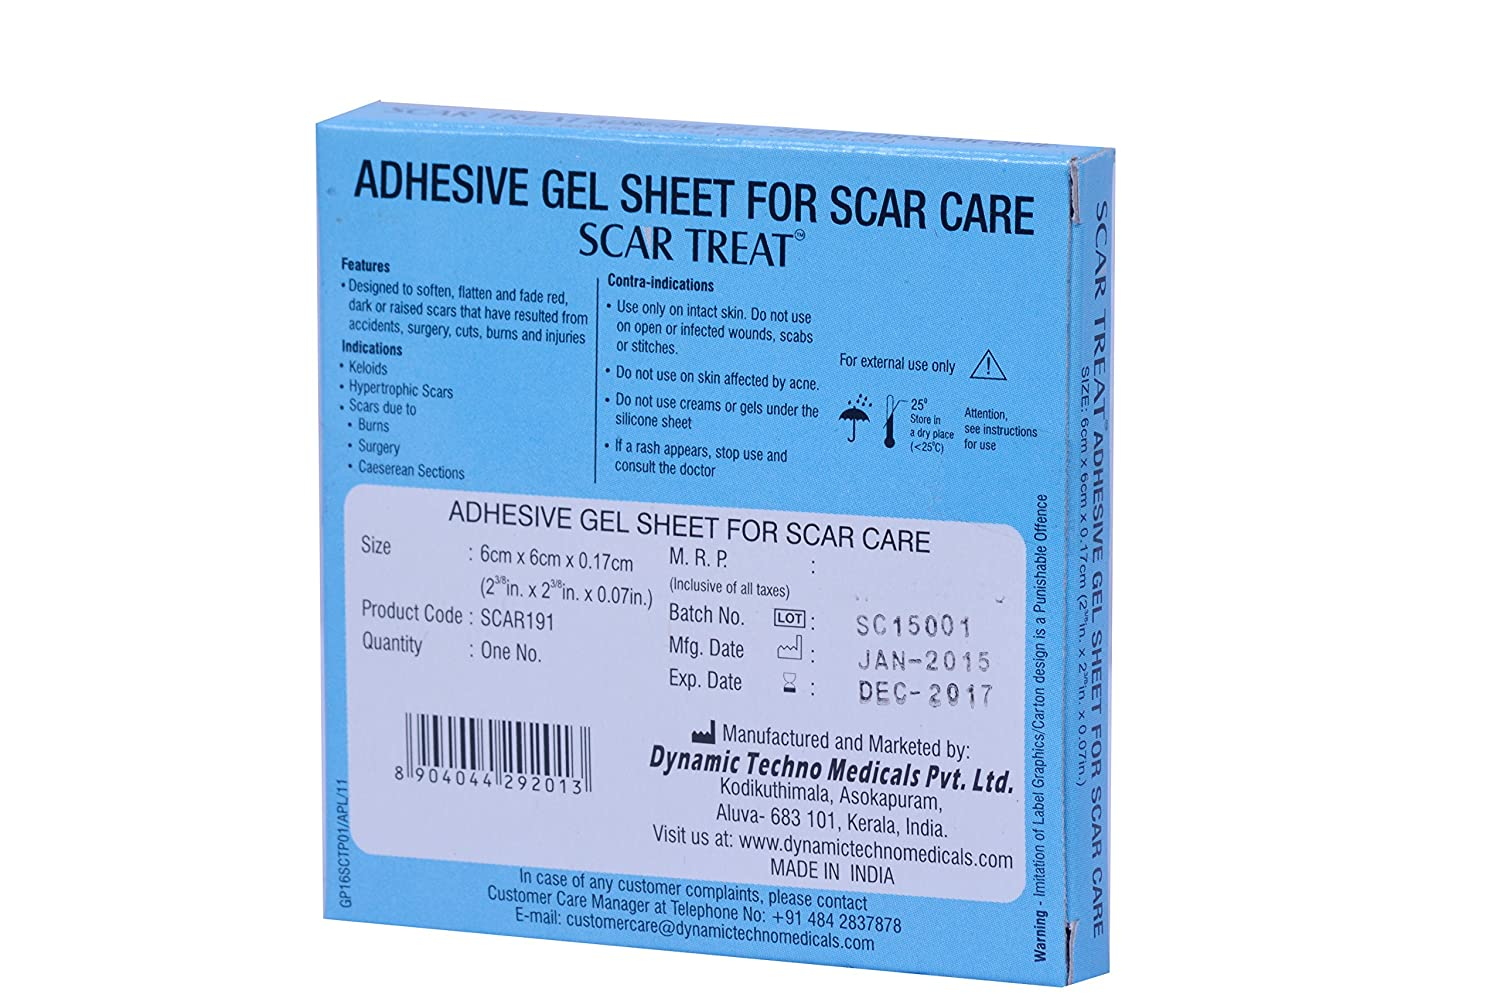 Buy Scar Treat Adhesive Gel Sheet For Scars 6x6 Cm Online At Low